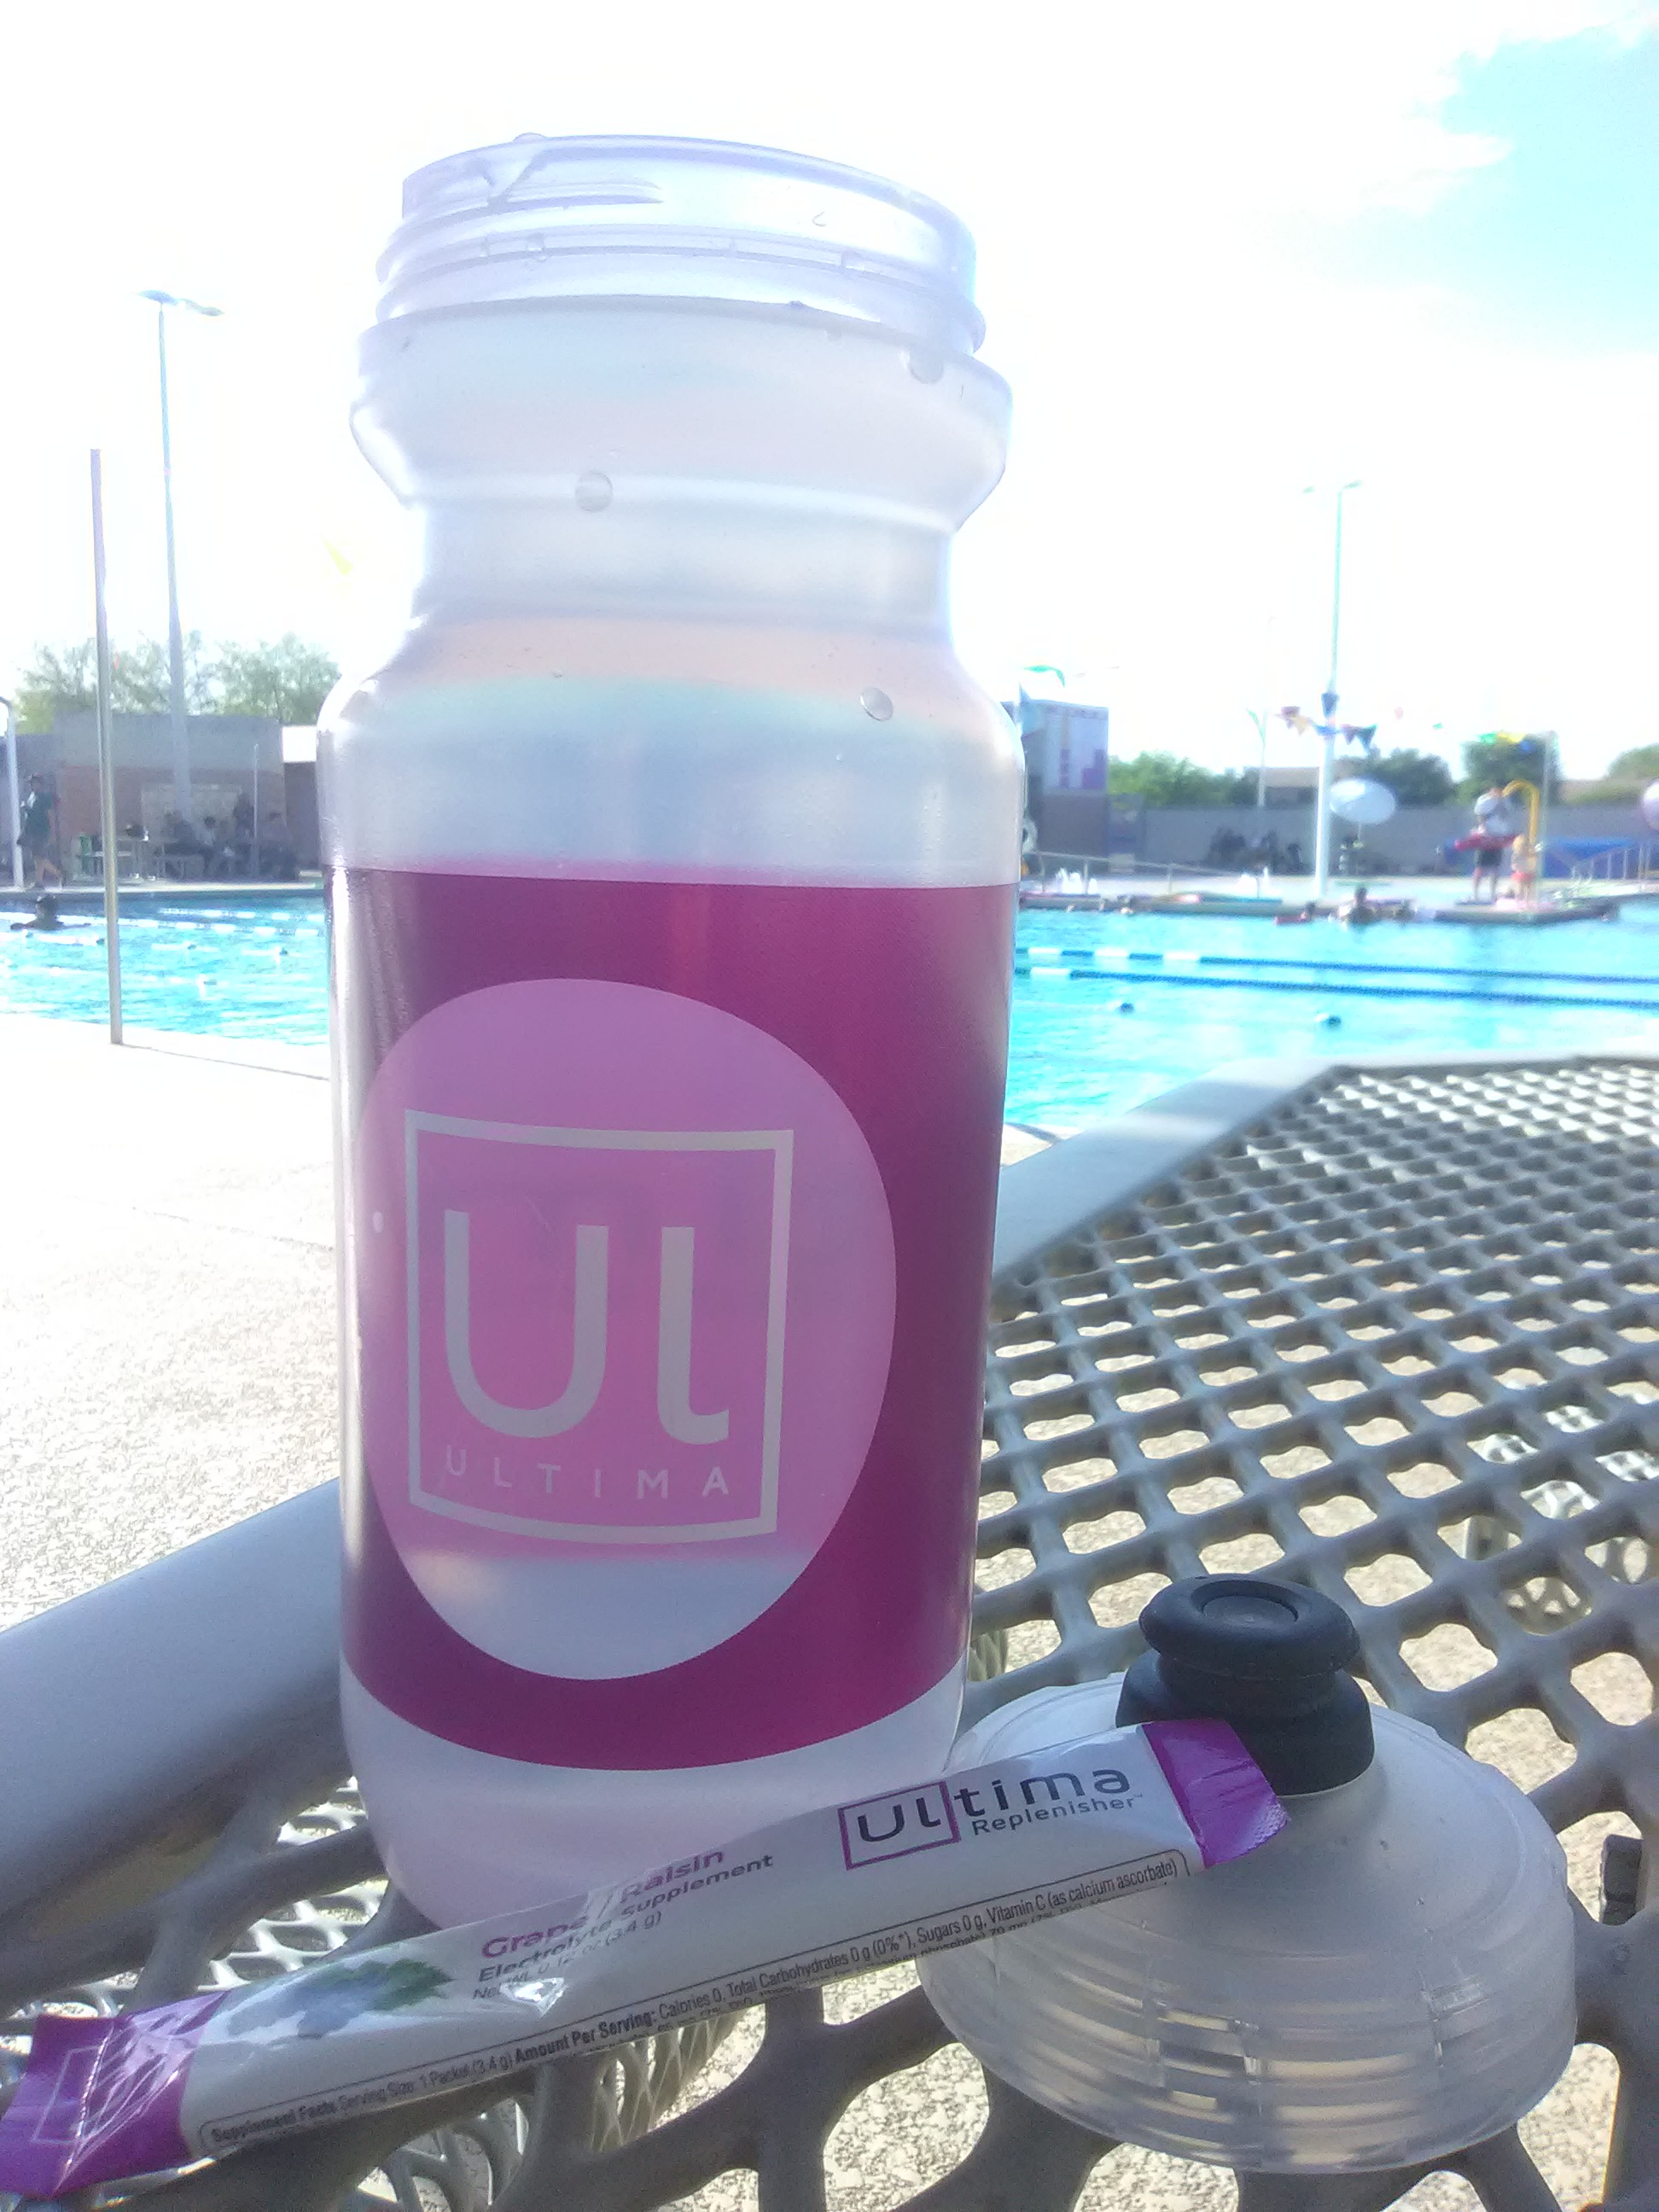 I took Ultima Replenisher in Grape with me while my son was in swim practice.